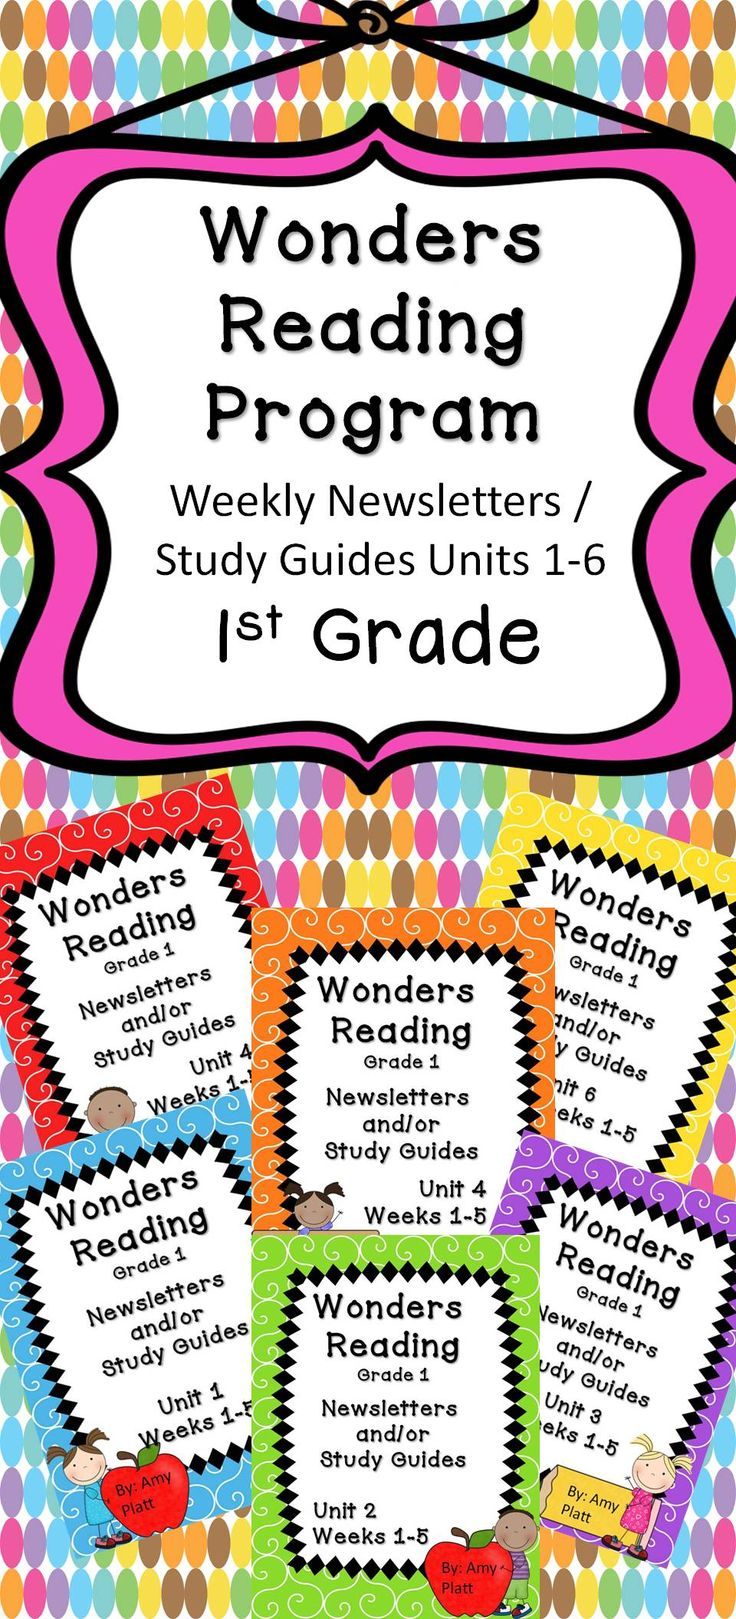 These are newsletters / study guides created to supplement the McGraw Hill Wonders Reading Program for 1st grade. All 6 Units are included and each newsletter includes: the weekly spelling words, comprehension skill, comprehension strategy, high frequency words, vocabulary words, and grammar skill for each week.